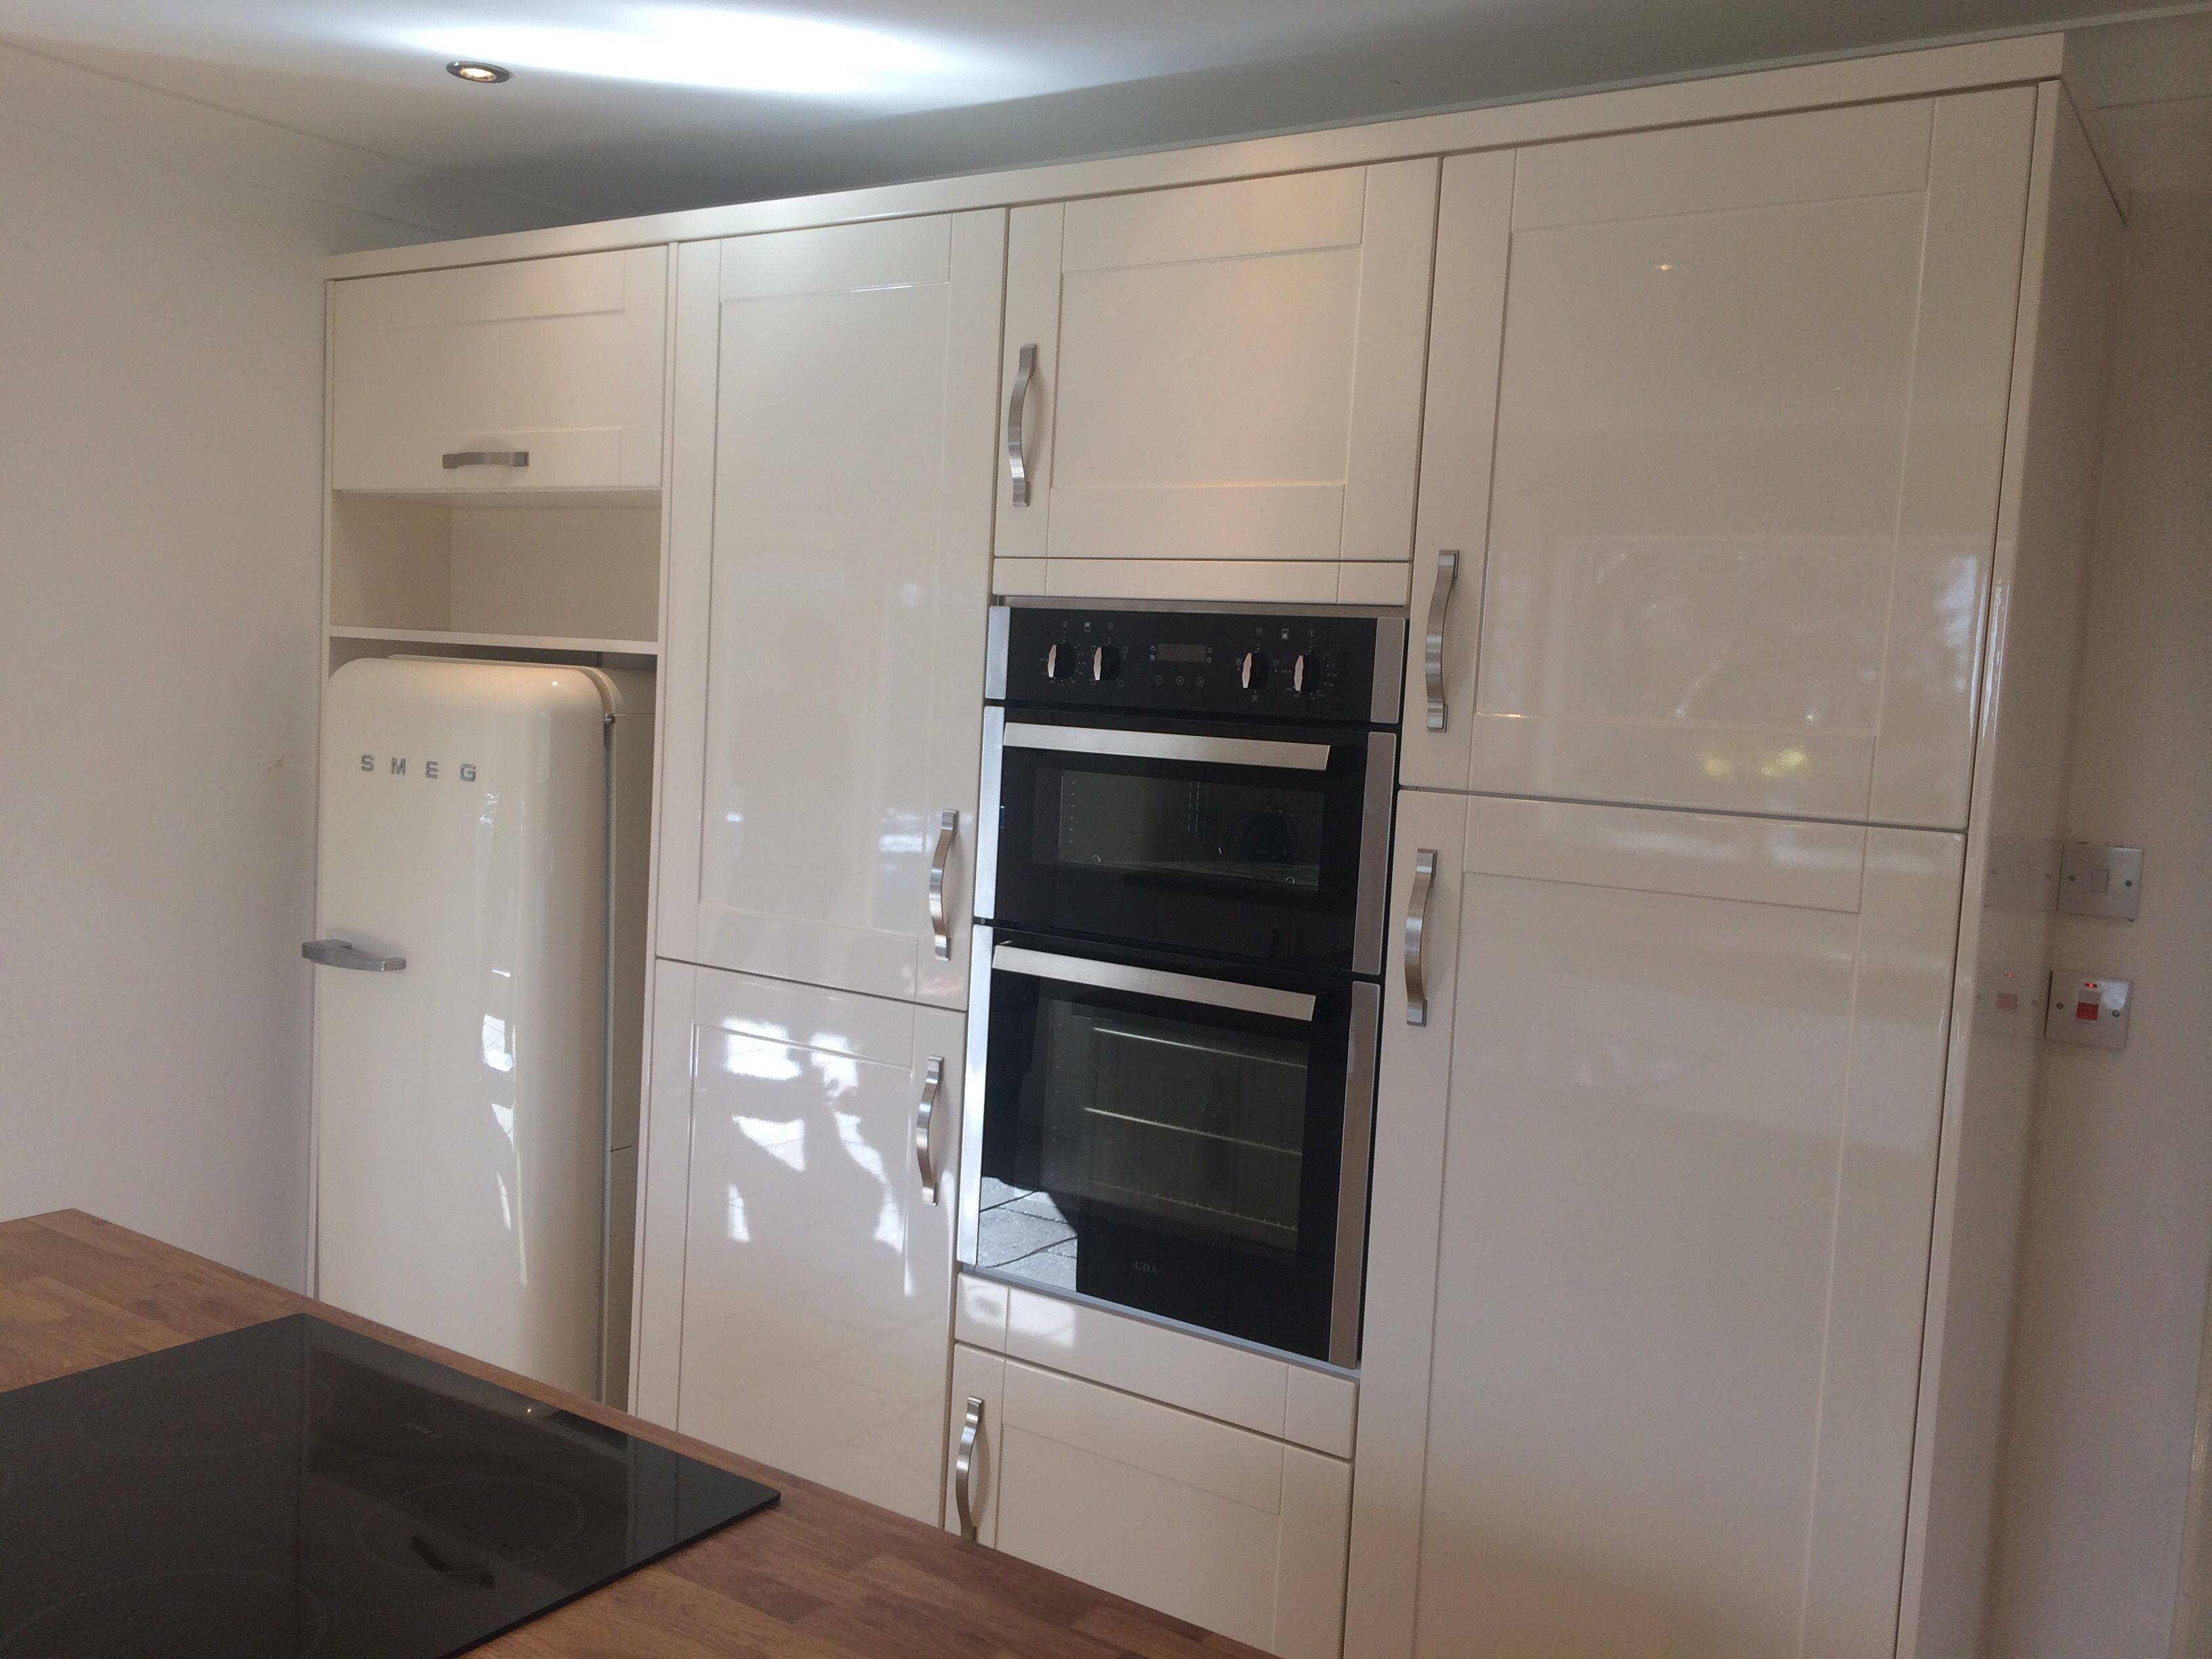 High Gloss Cream Shaker Style Oak Laminate Effect Worktop Total Transformation This Was The Dining Shaker Kitchen Cabinets Kitchen Design Kitchen Cabinets